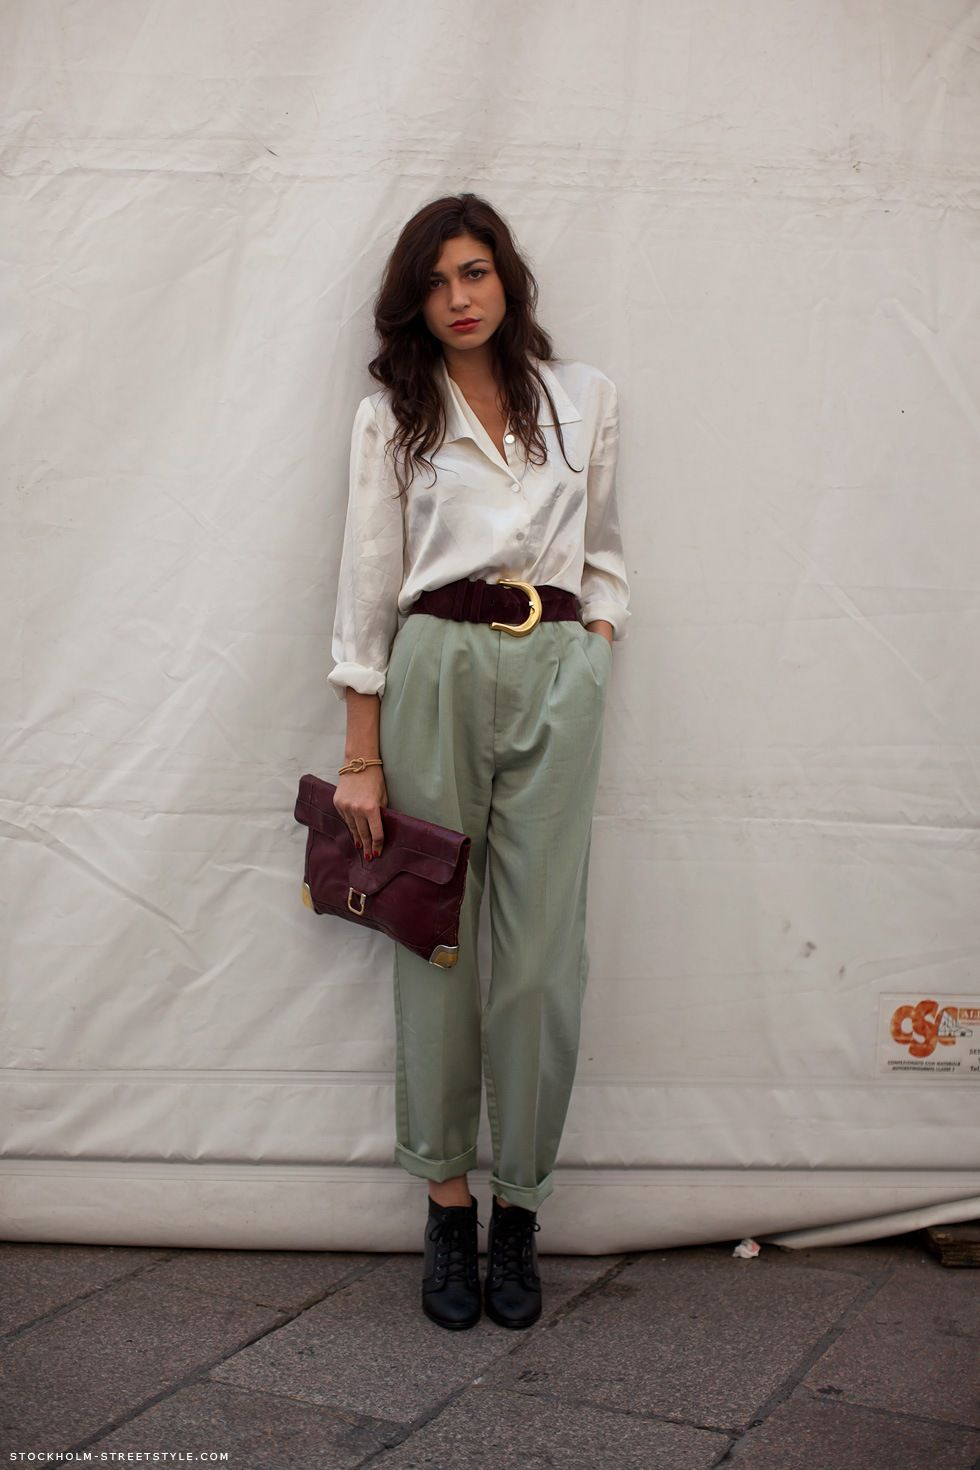 7fb4d78b7ae 22 Women Outfits With Mint Pants To Repeat - Styleoholic. The Camelia   novembre 2011 More